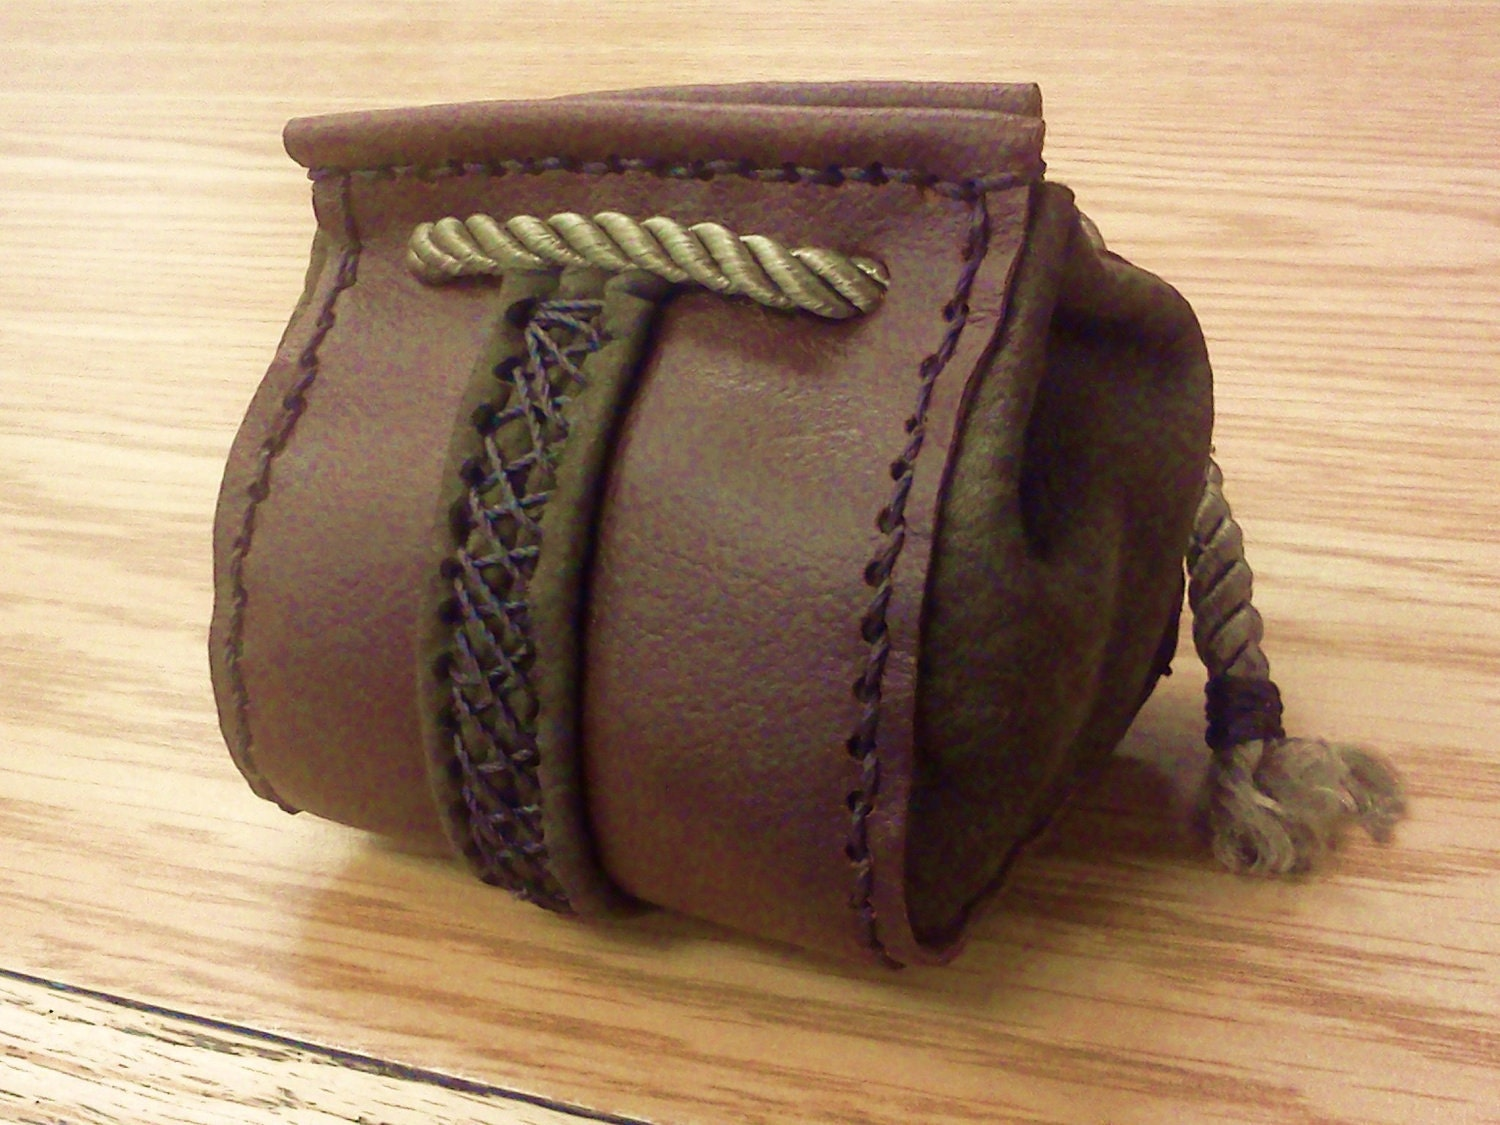 Brown and green strip leather drawstring bag for Drawstring jewelry bag pattern